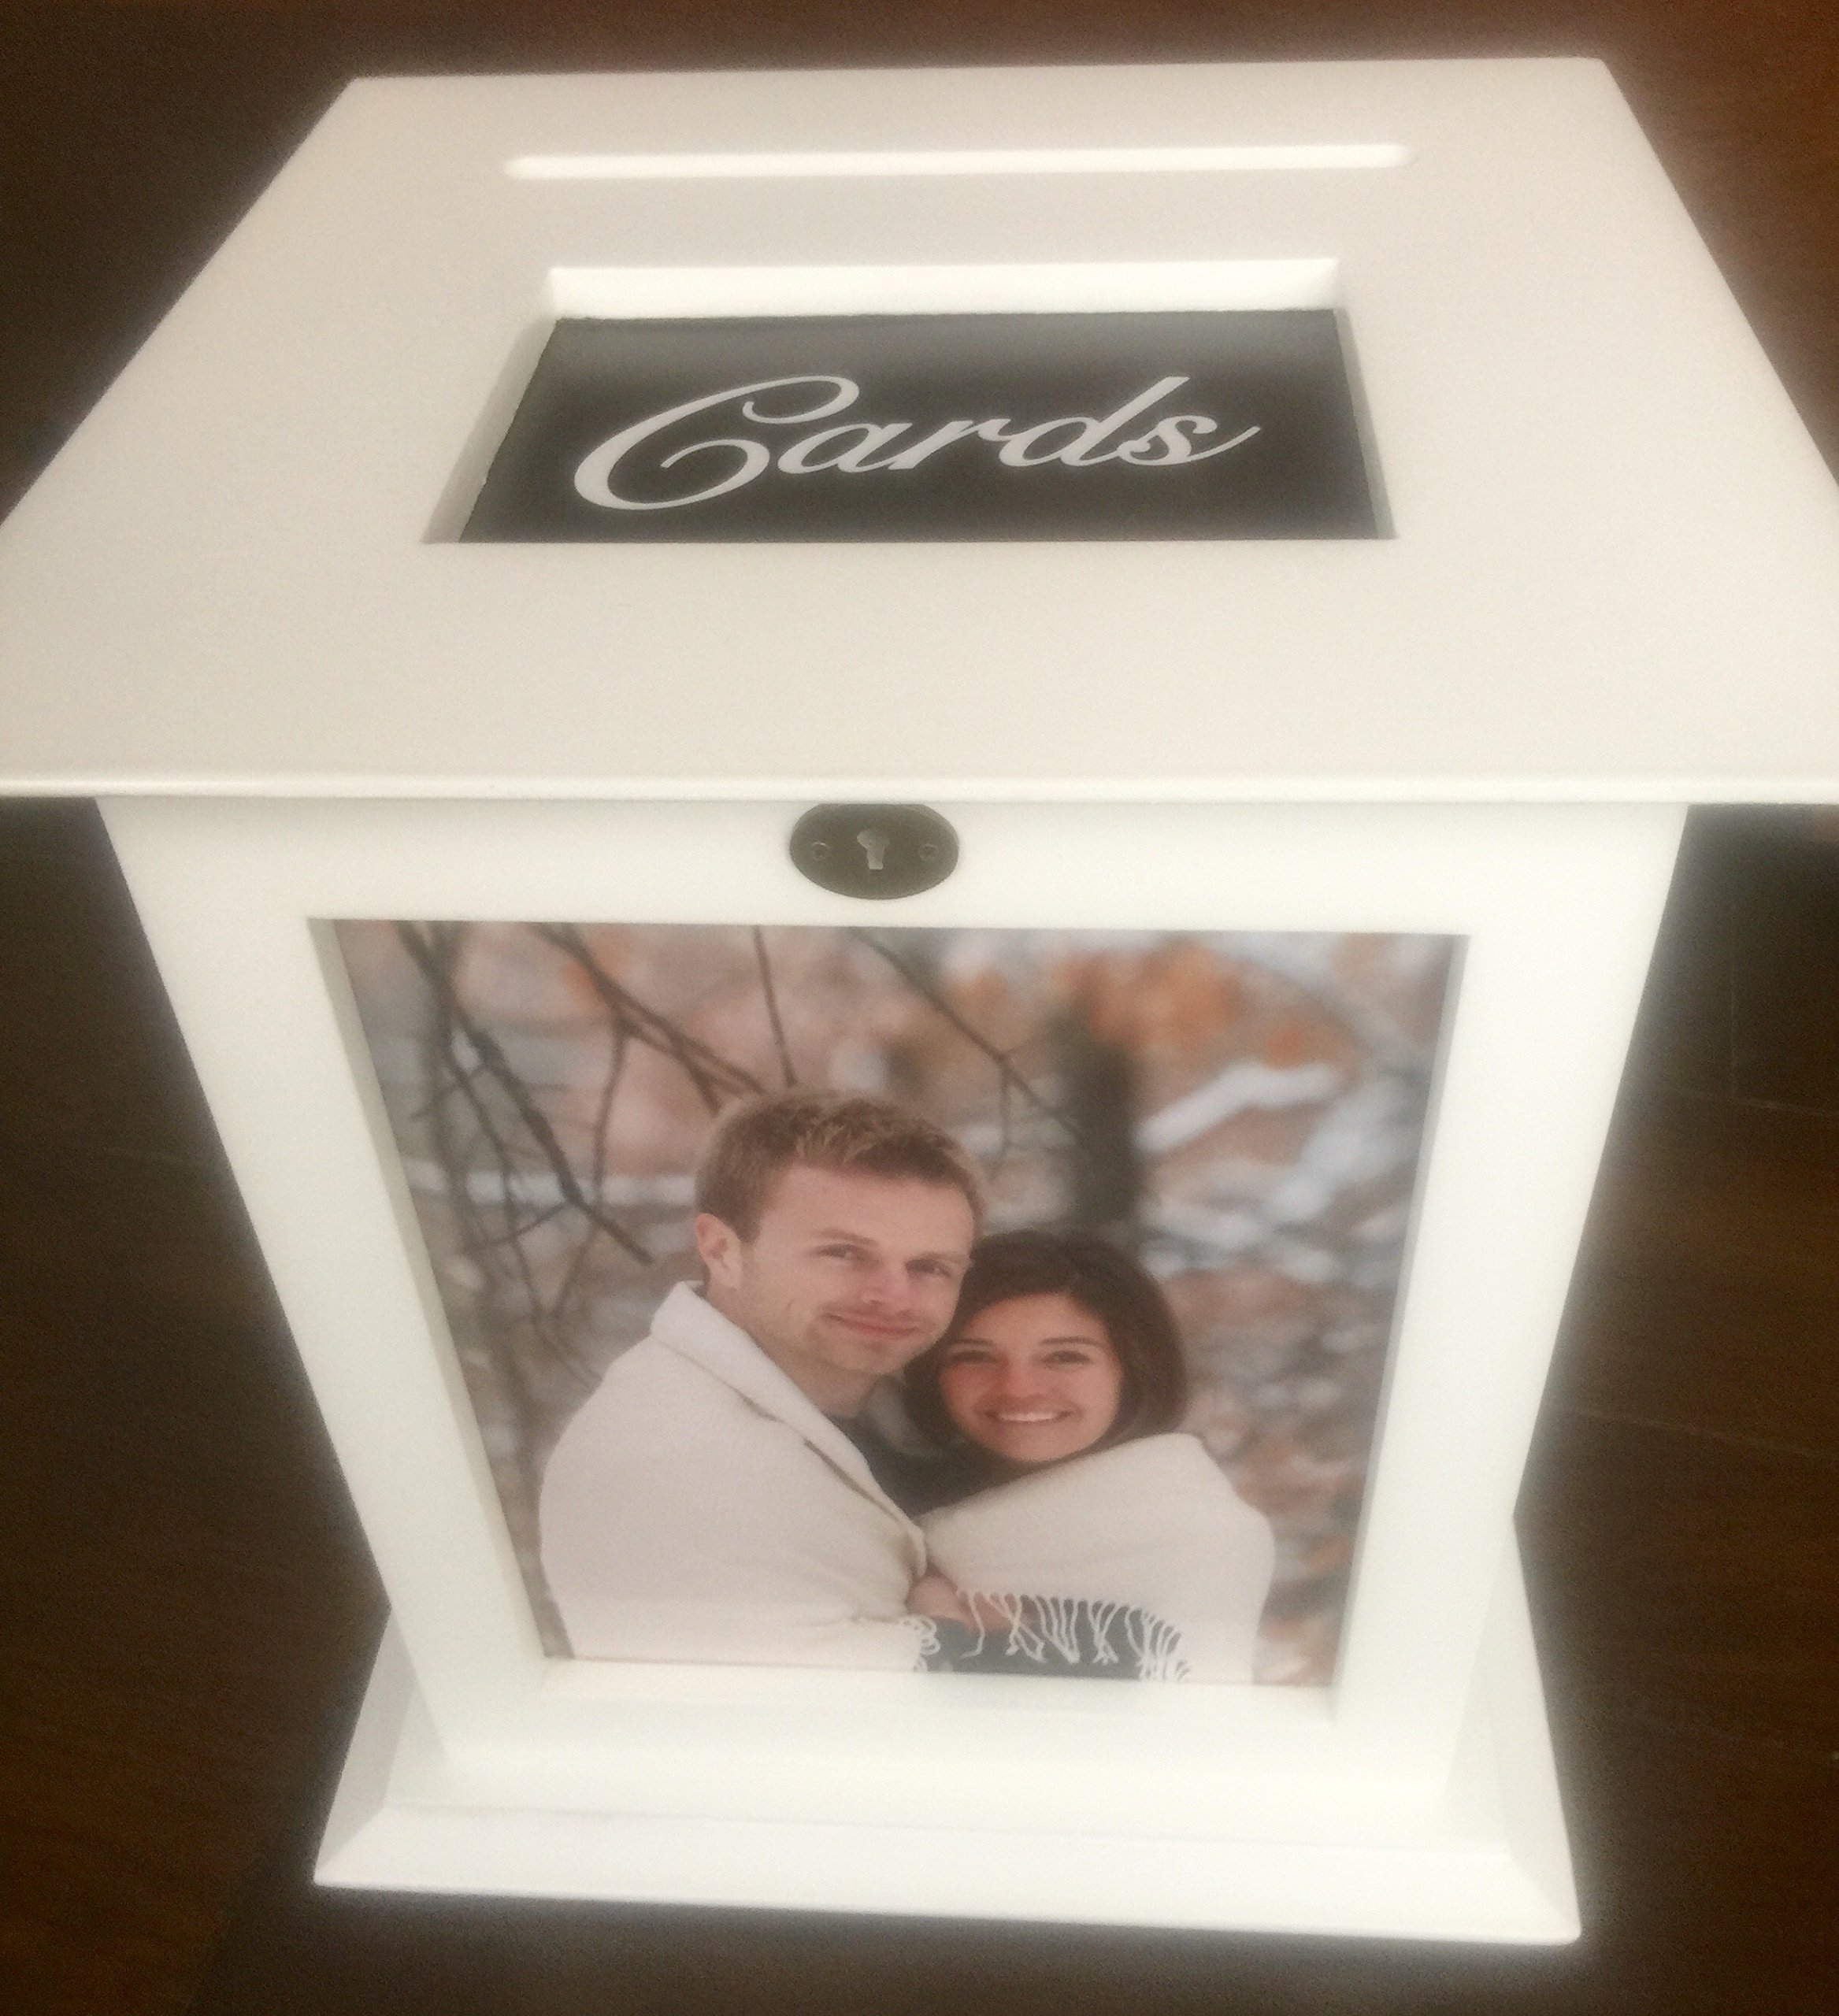 White Wedding Card Box with CARDS Engraved Plate Included